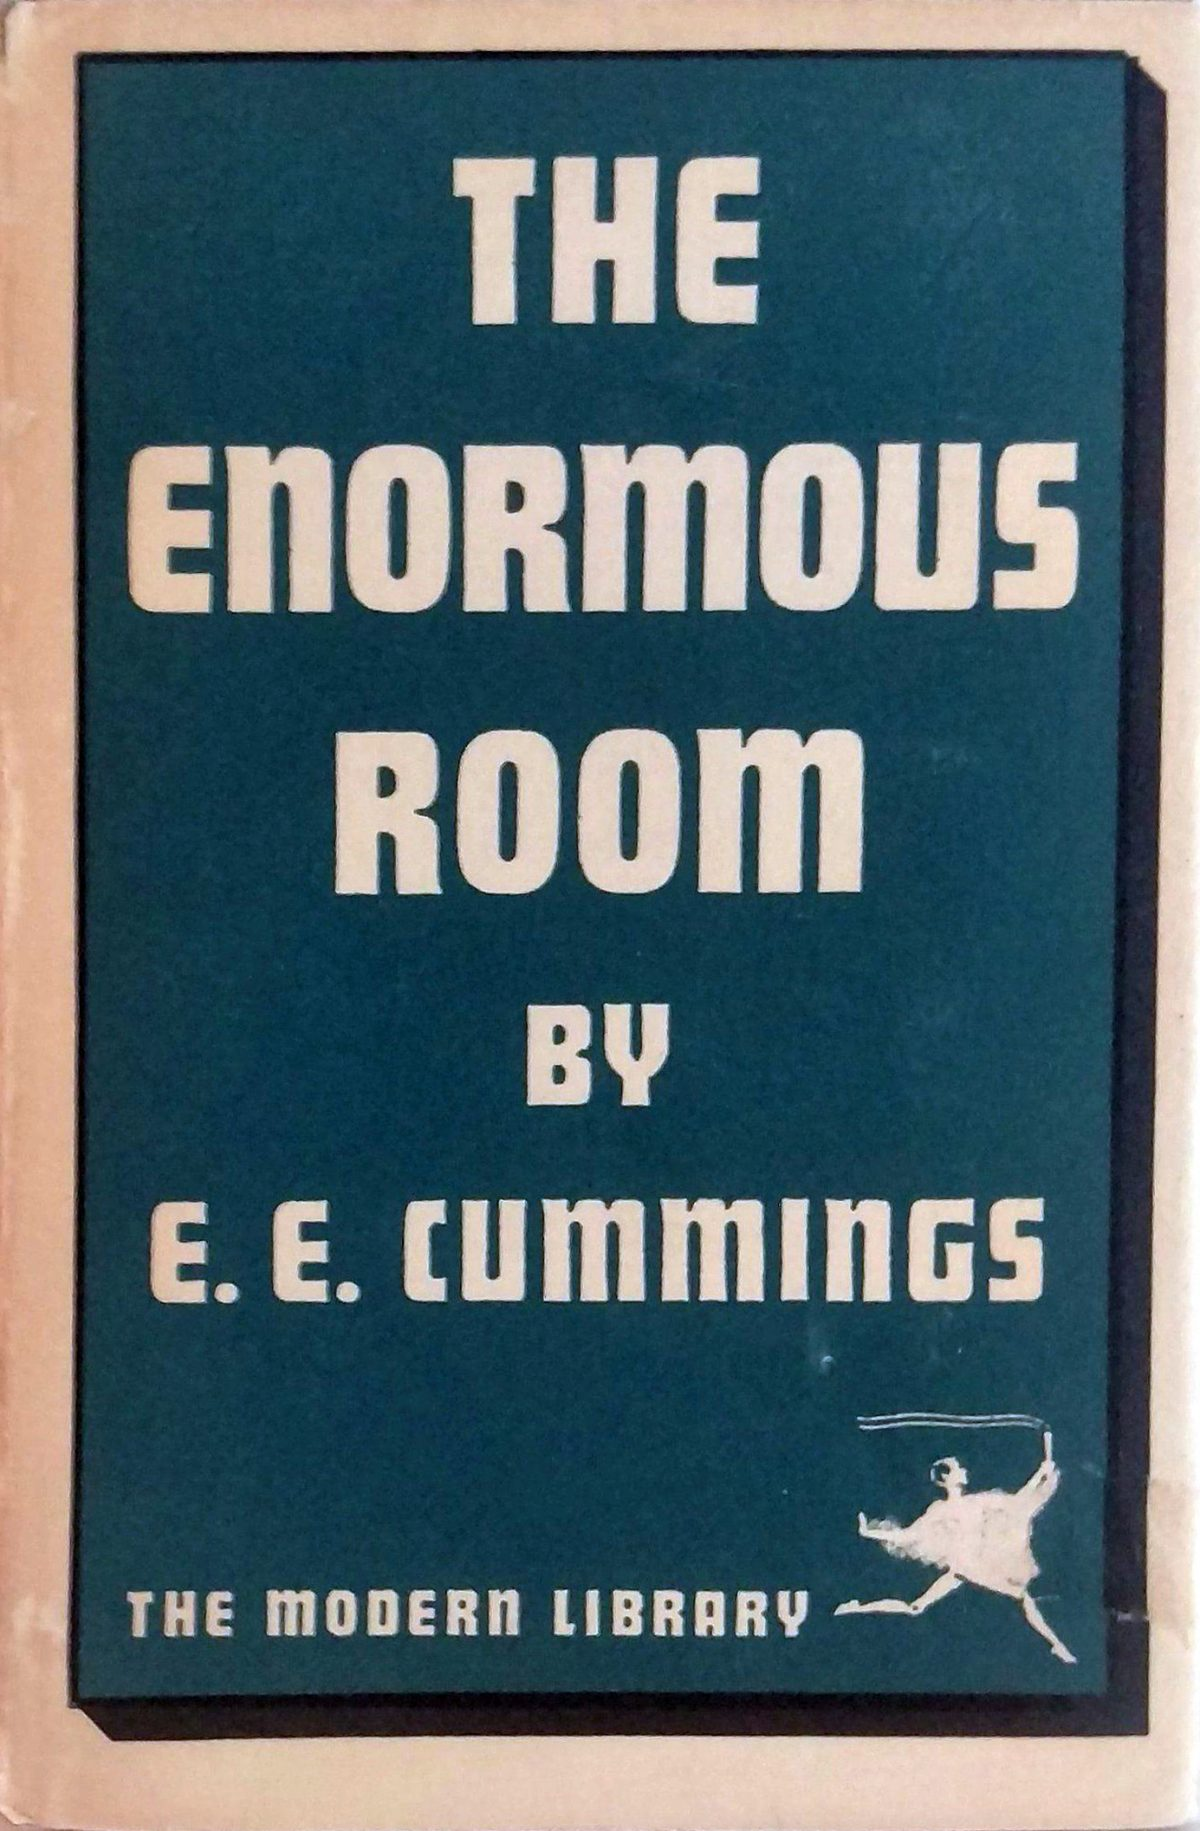 The Enormous Room by E.E. Cummings Hemingway